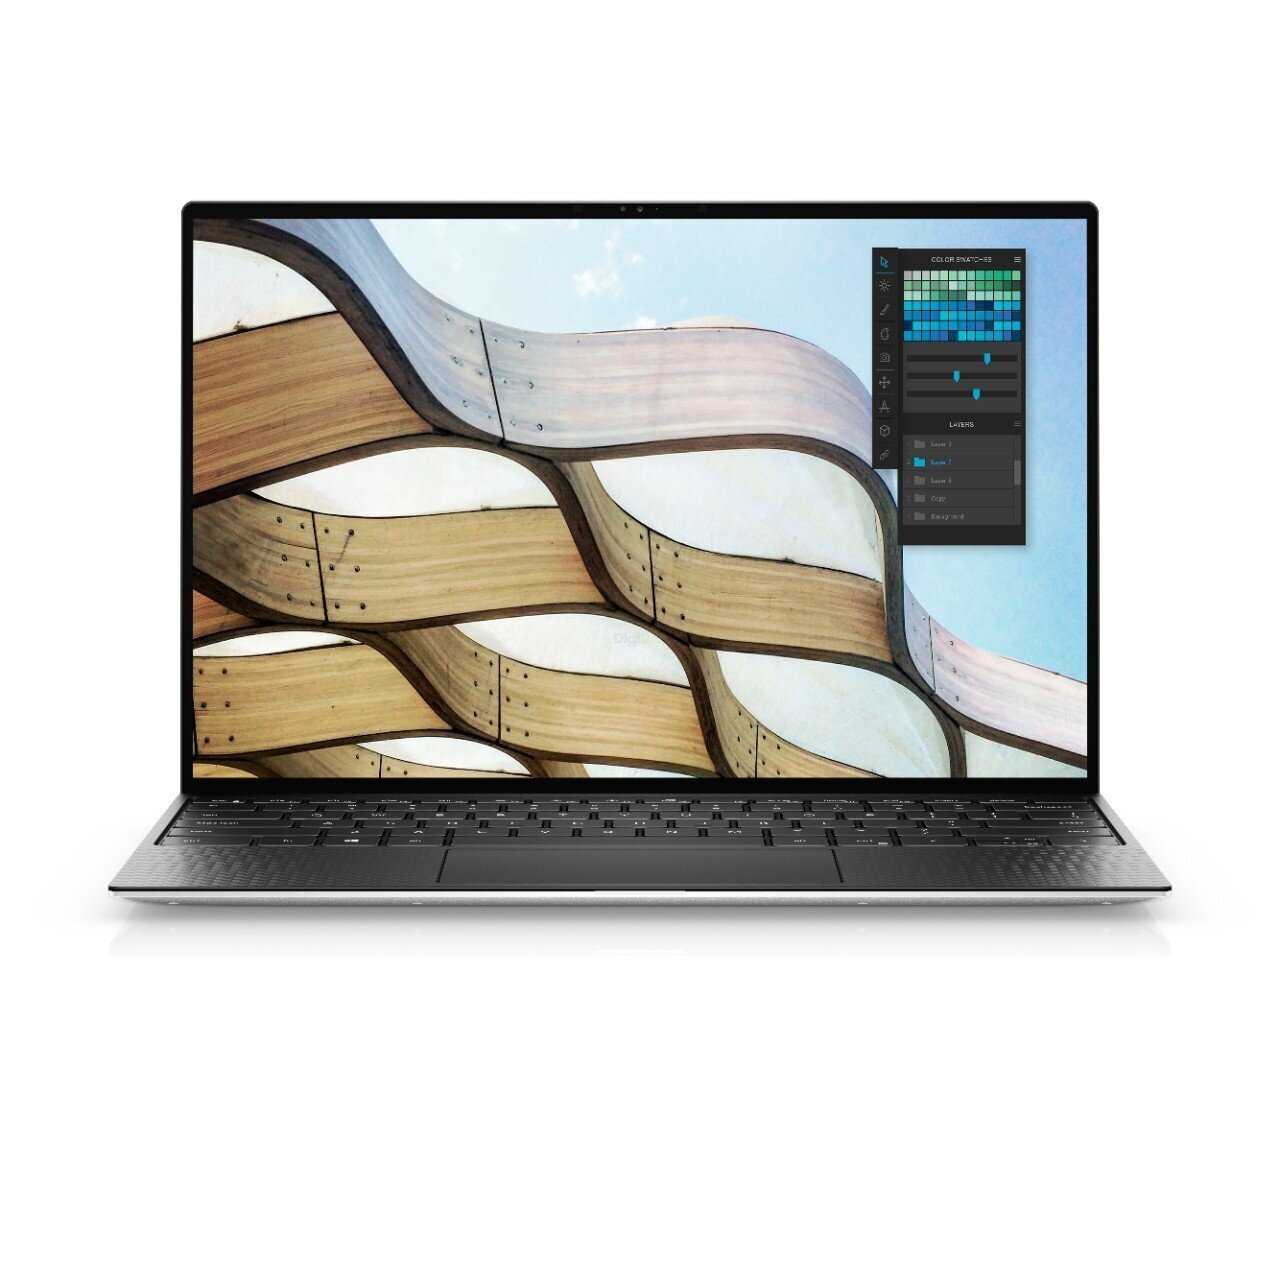 Dell XPS 13 9300 FHD+ i7 8GB 512GB W10